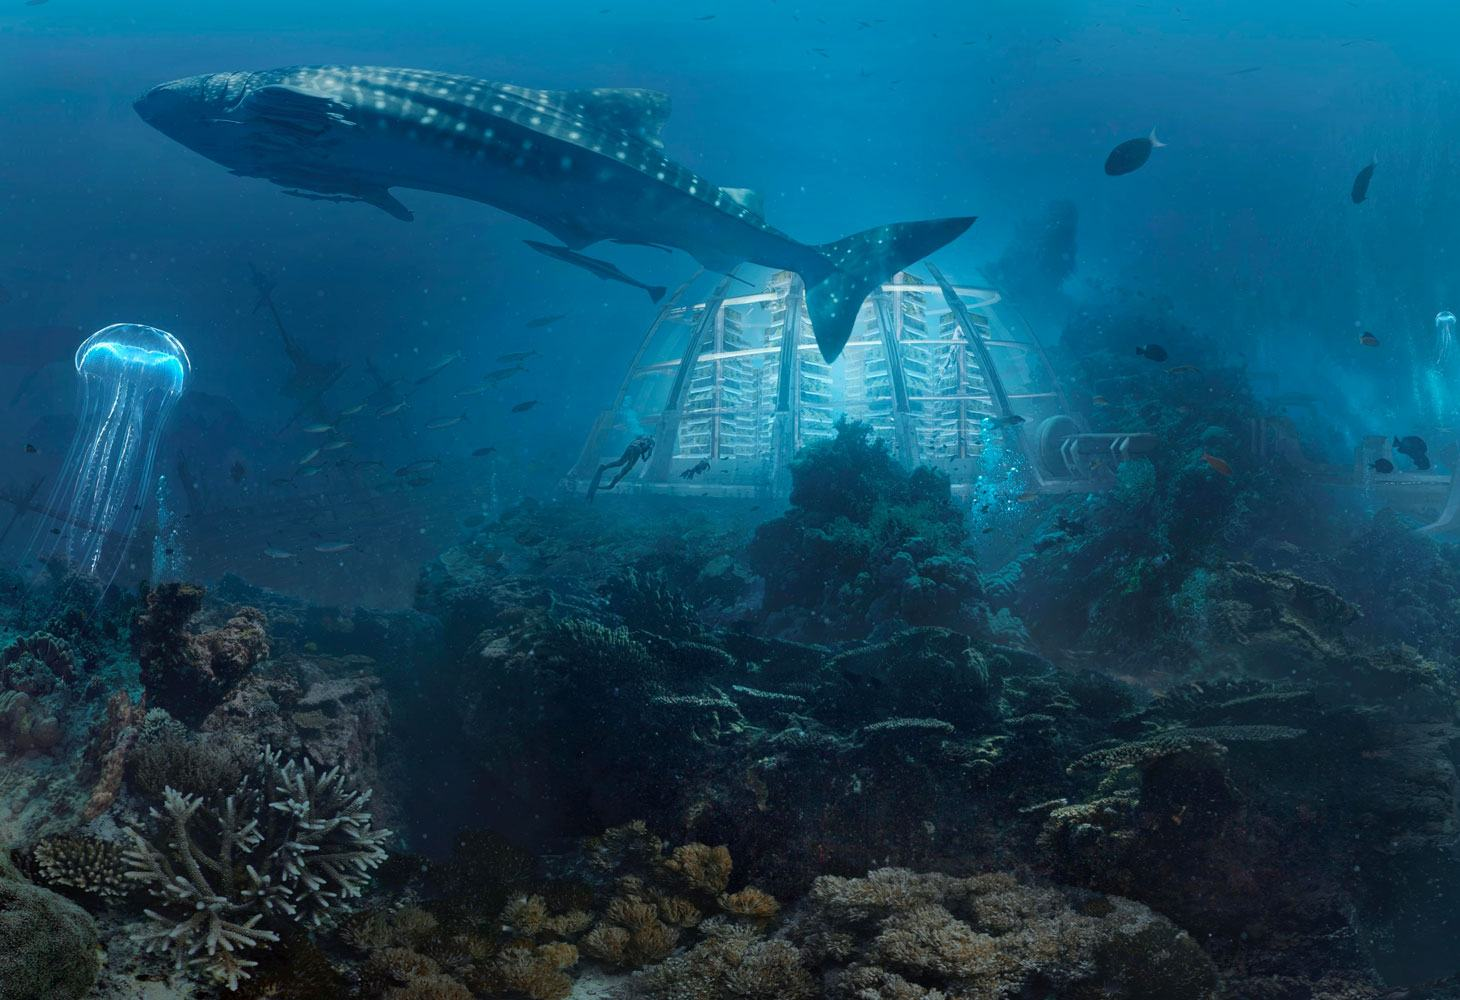 Underwater city on Earth 2050